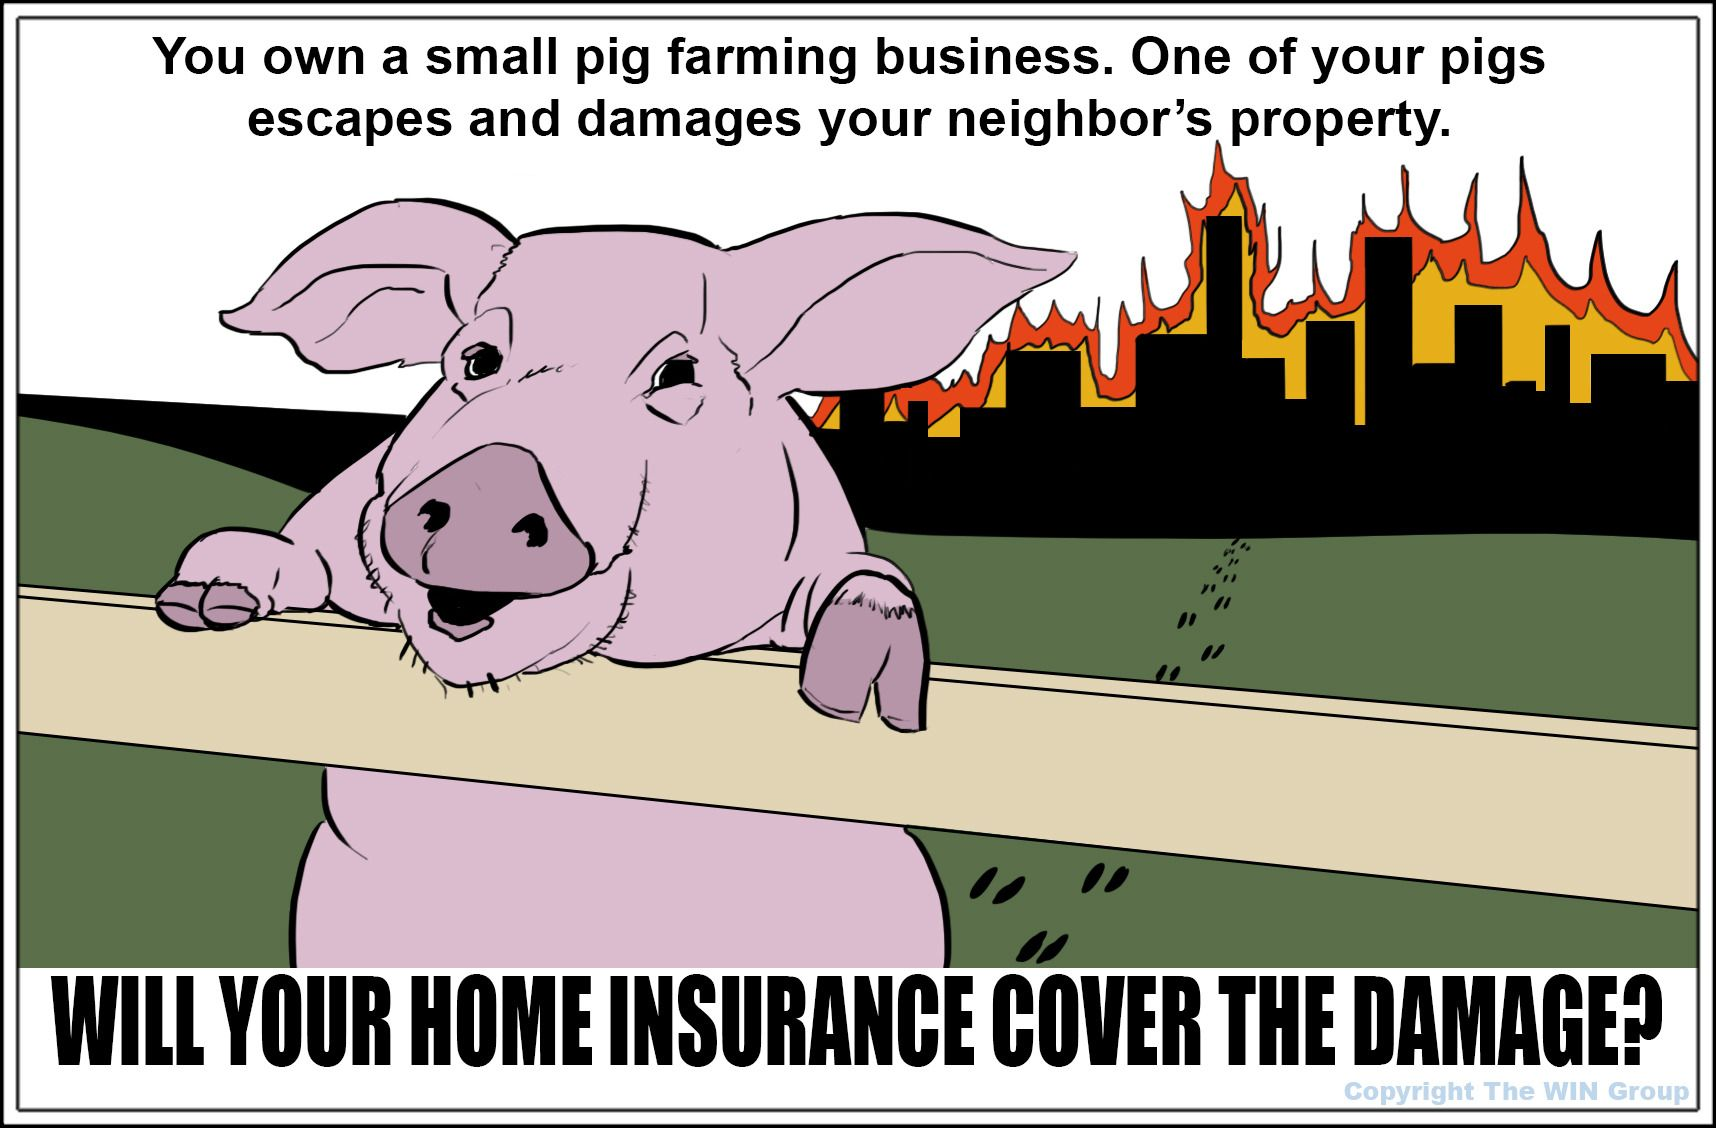 Insurance Trivia Question: You own a small pig farming